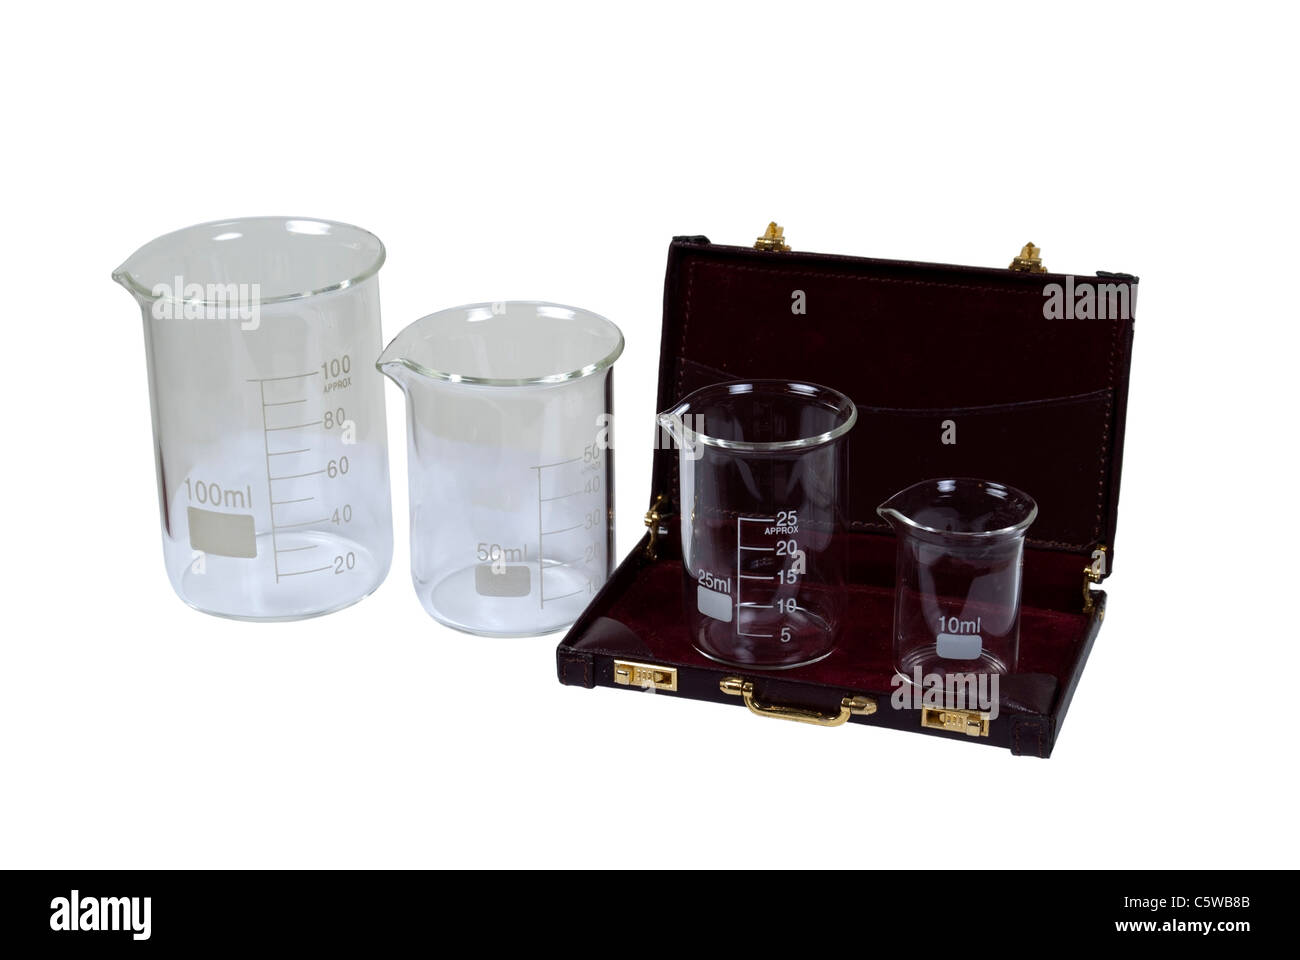 Beakers used to measure and store liquids during research projects in a briefcase - path included - Stock Image